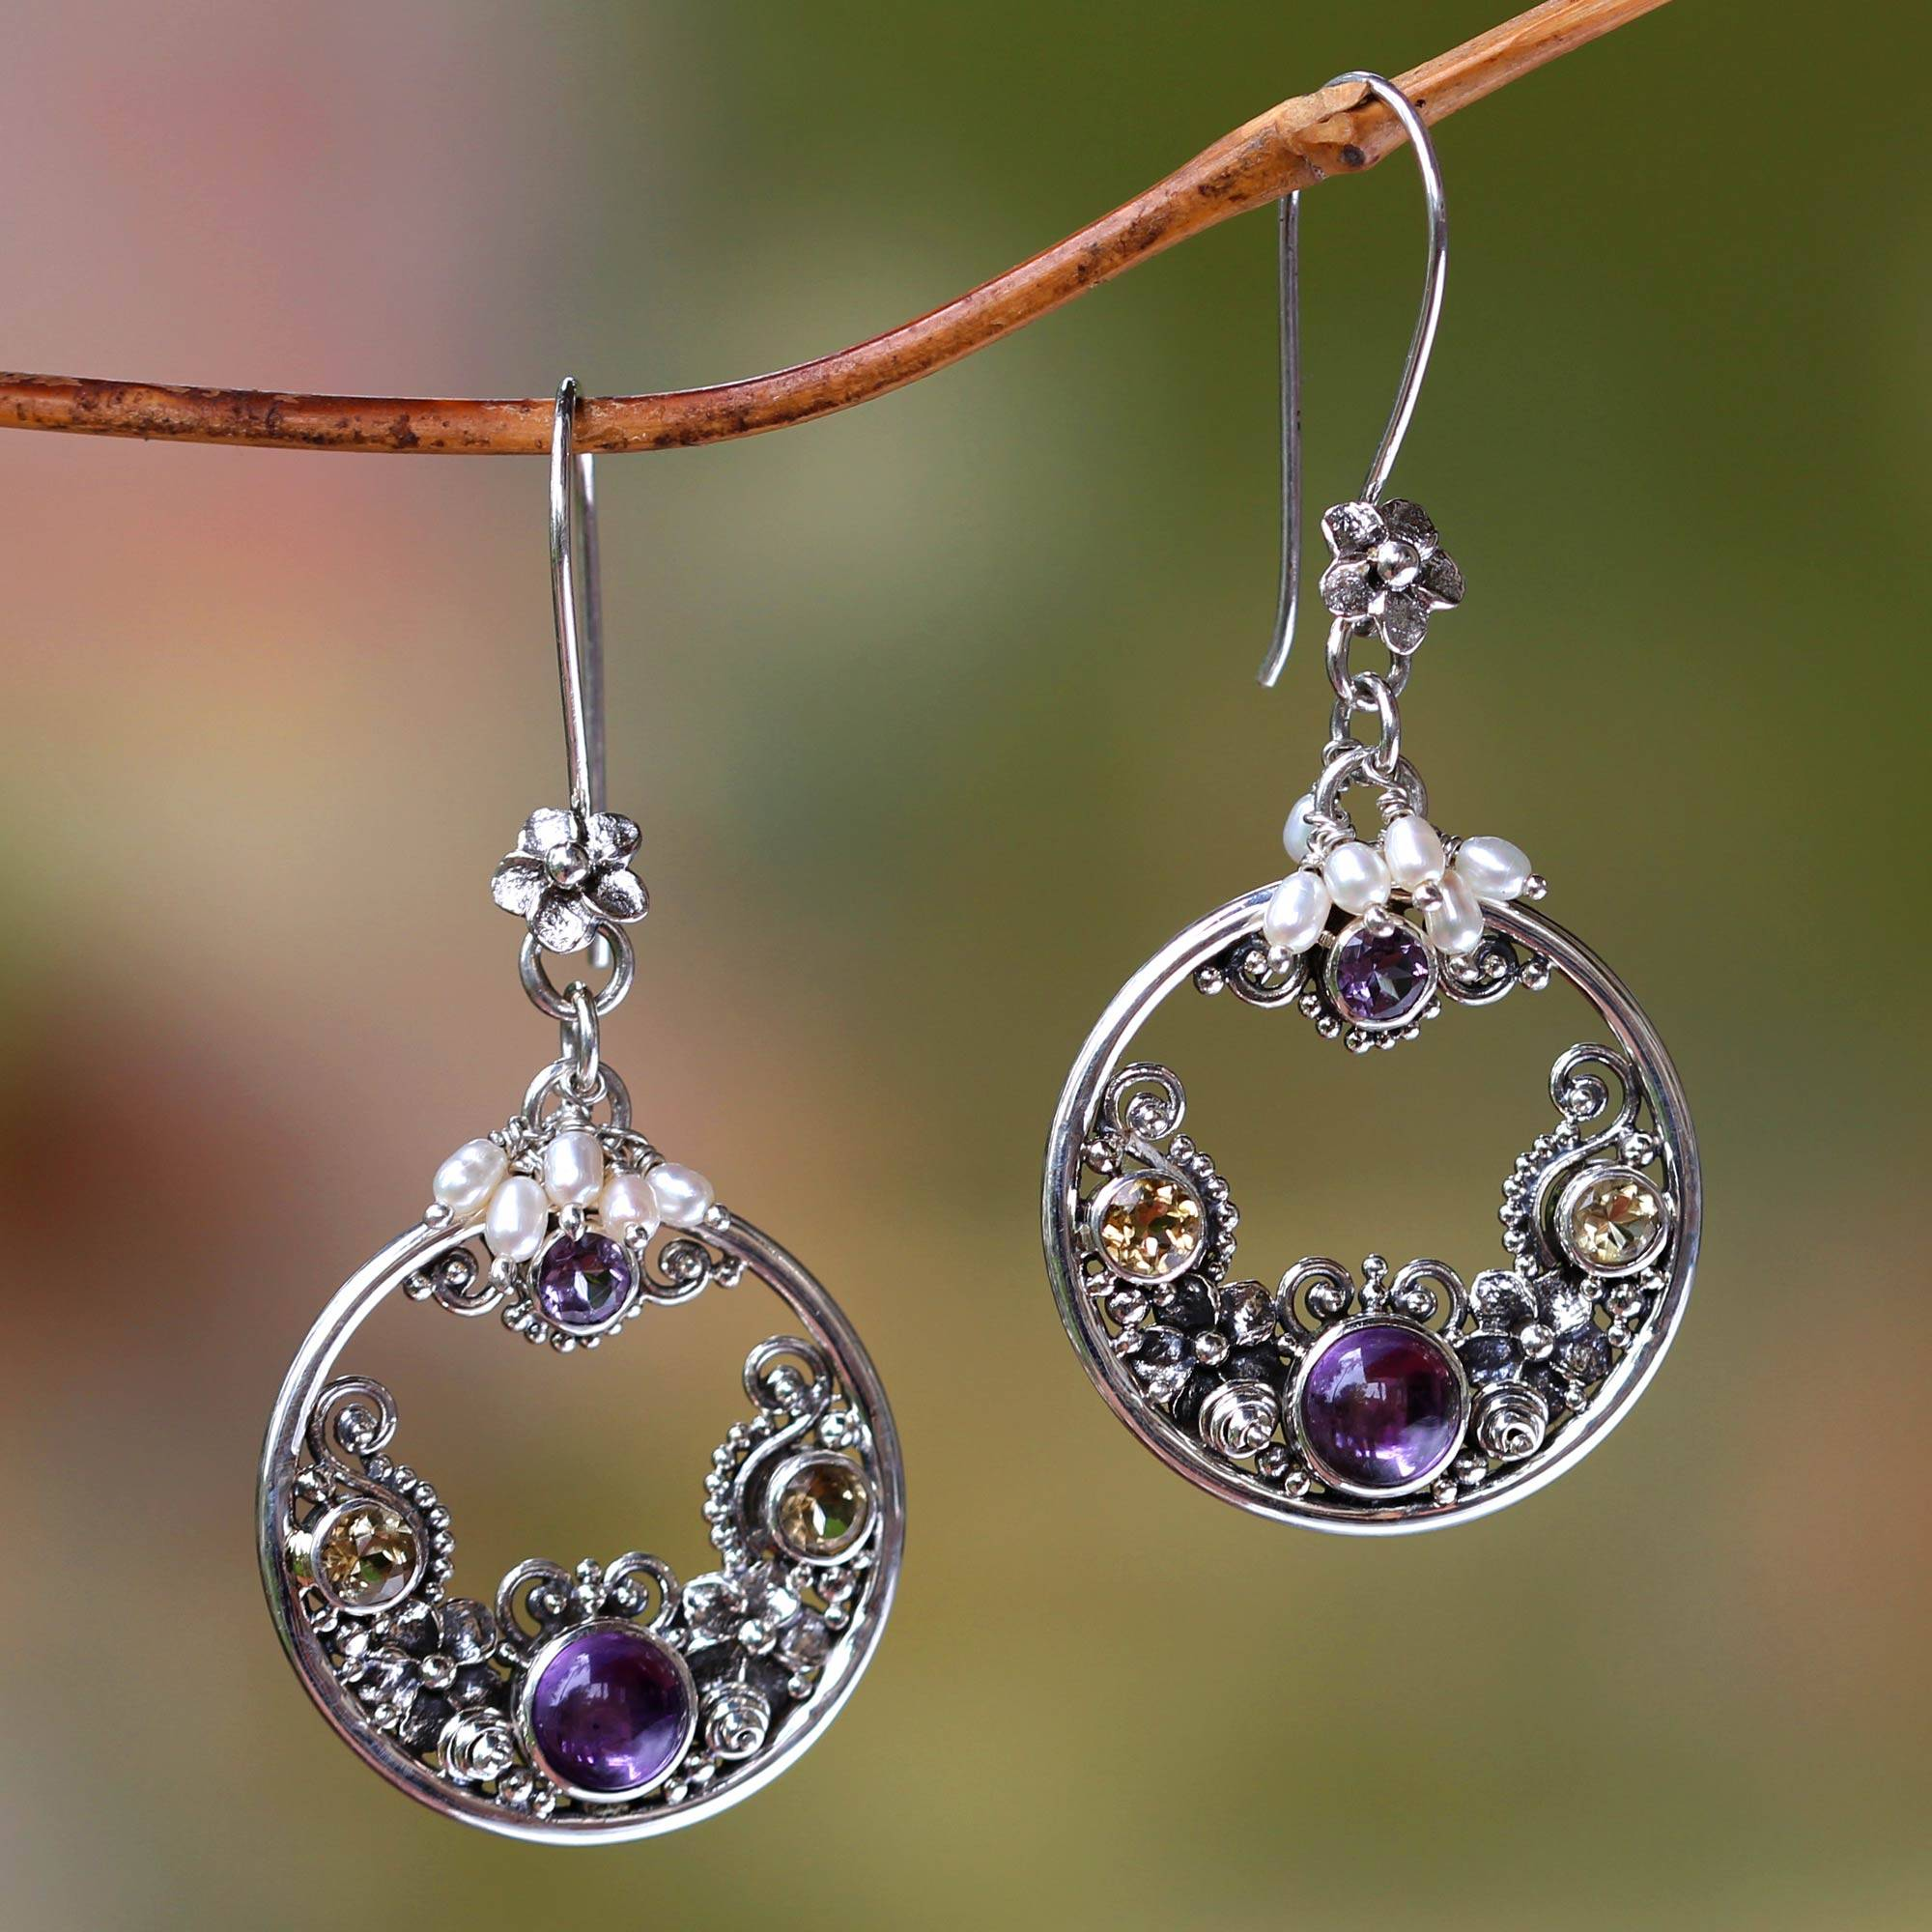 Frangipani Moons Pearl and Amethyst Earrings from Balinese Artisan Artisan story